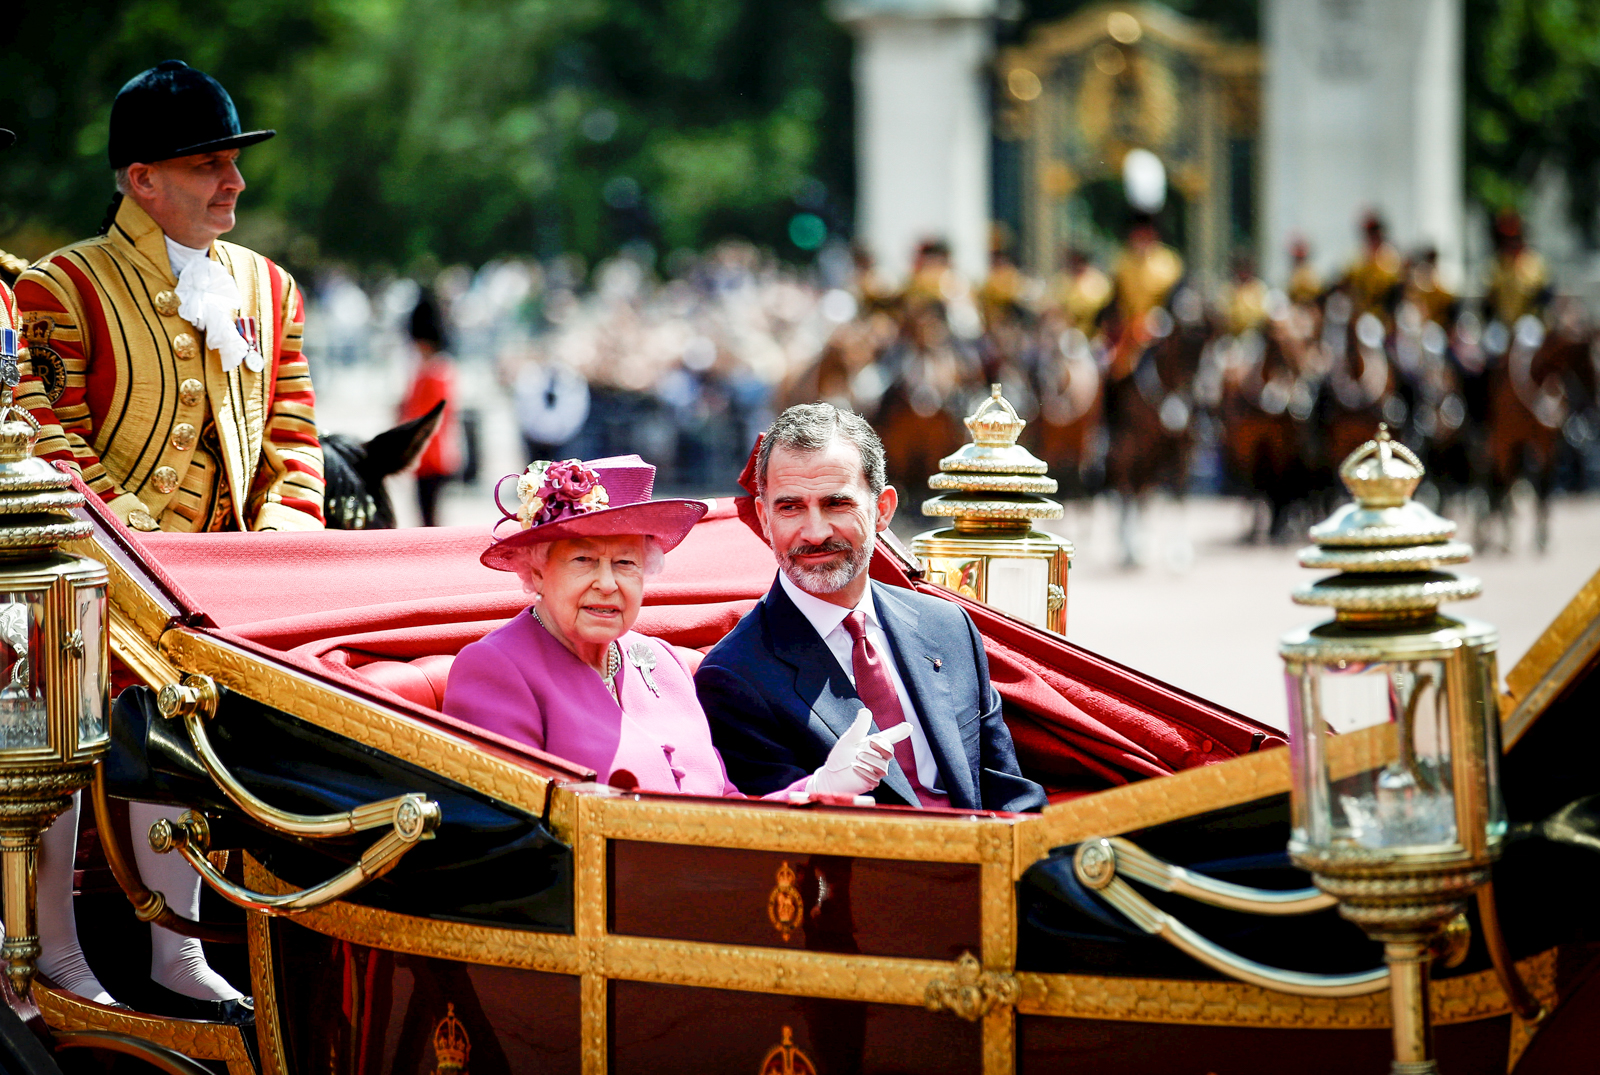 His Majesty King Felipe VI of Spain, accompanied by Her Majesty Queen Elizabeth II arrive at Buckingham Palace.